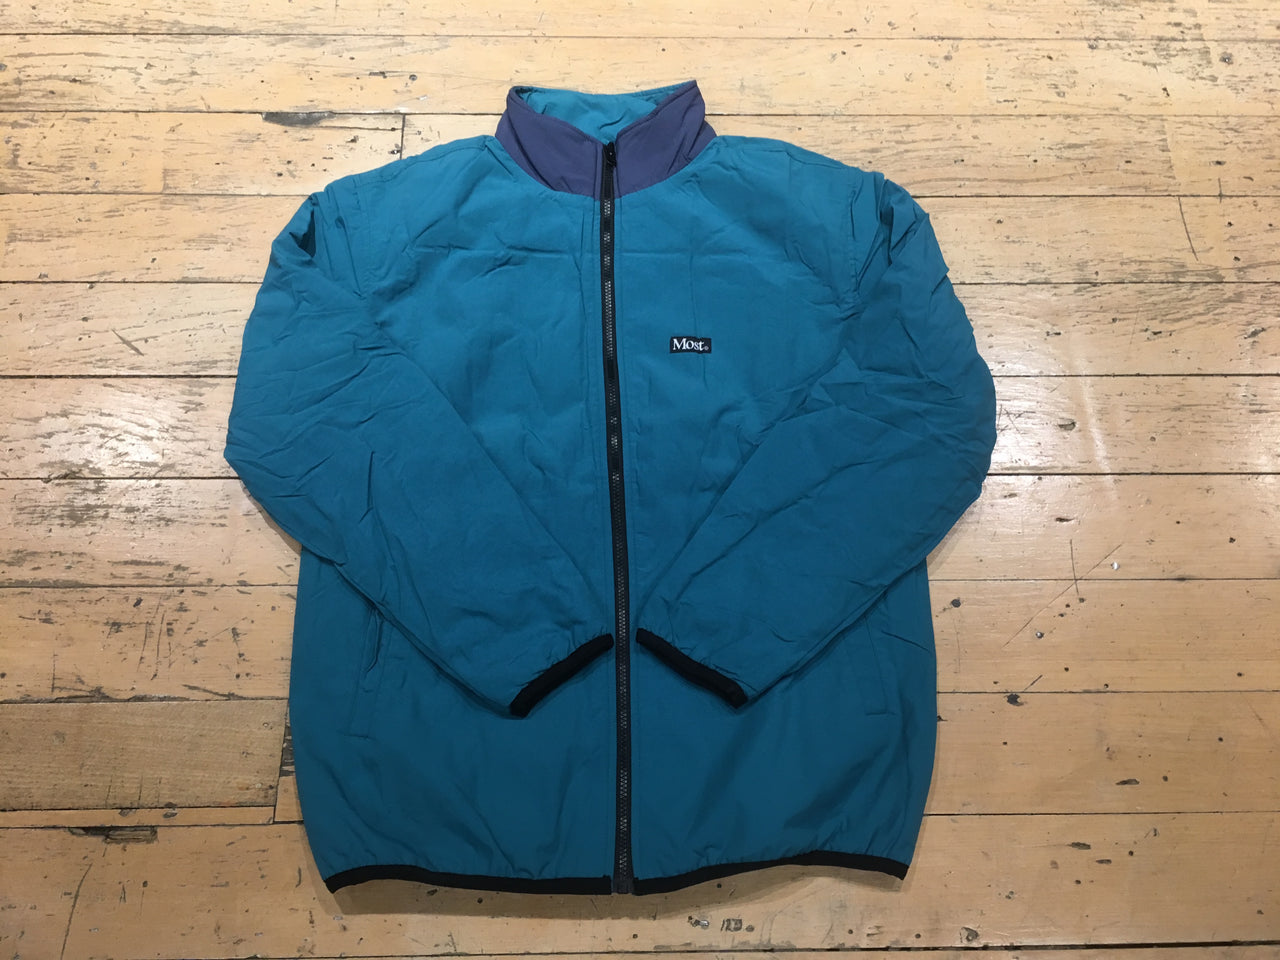 Duo Jacket - Navy/Teal